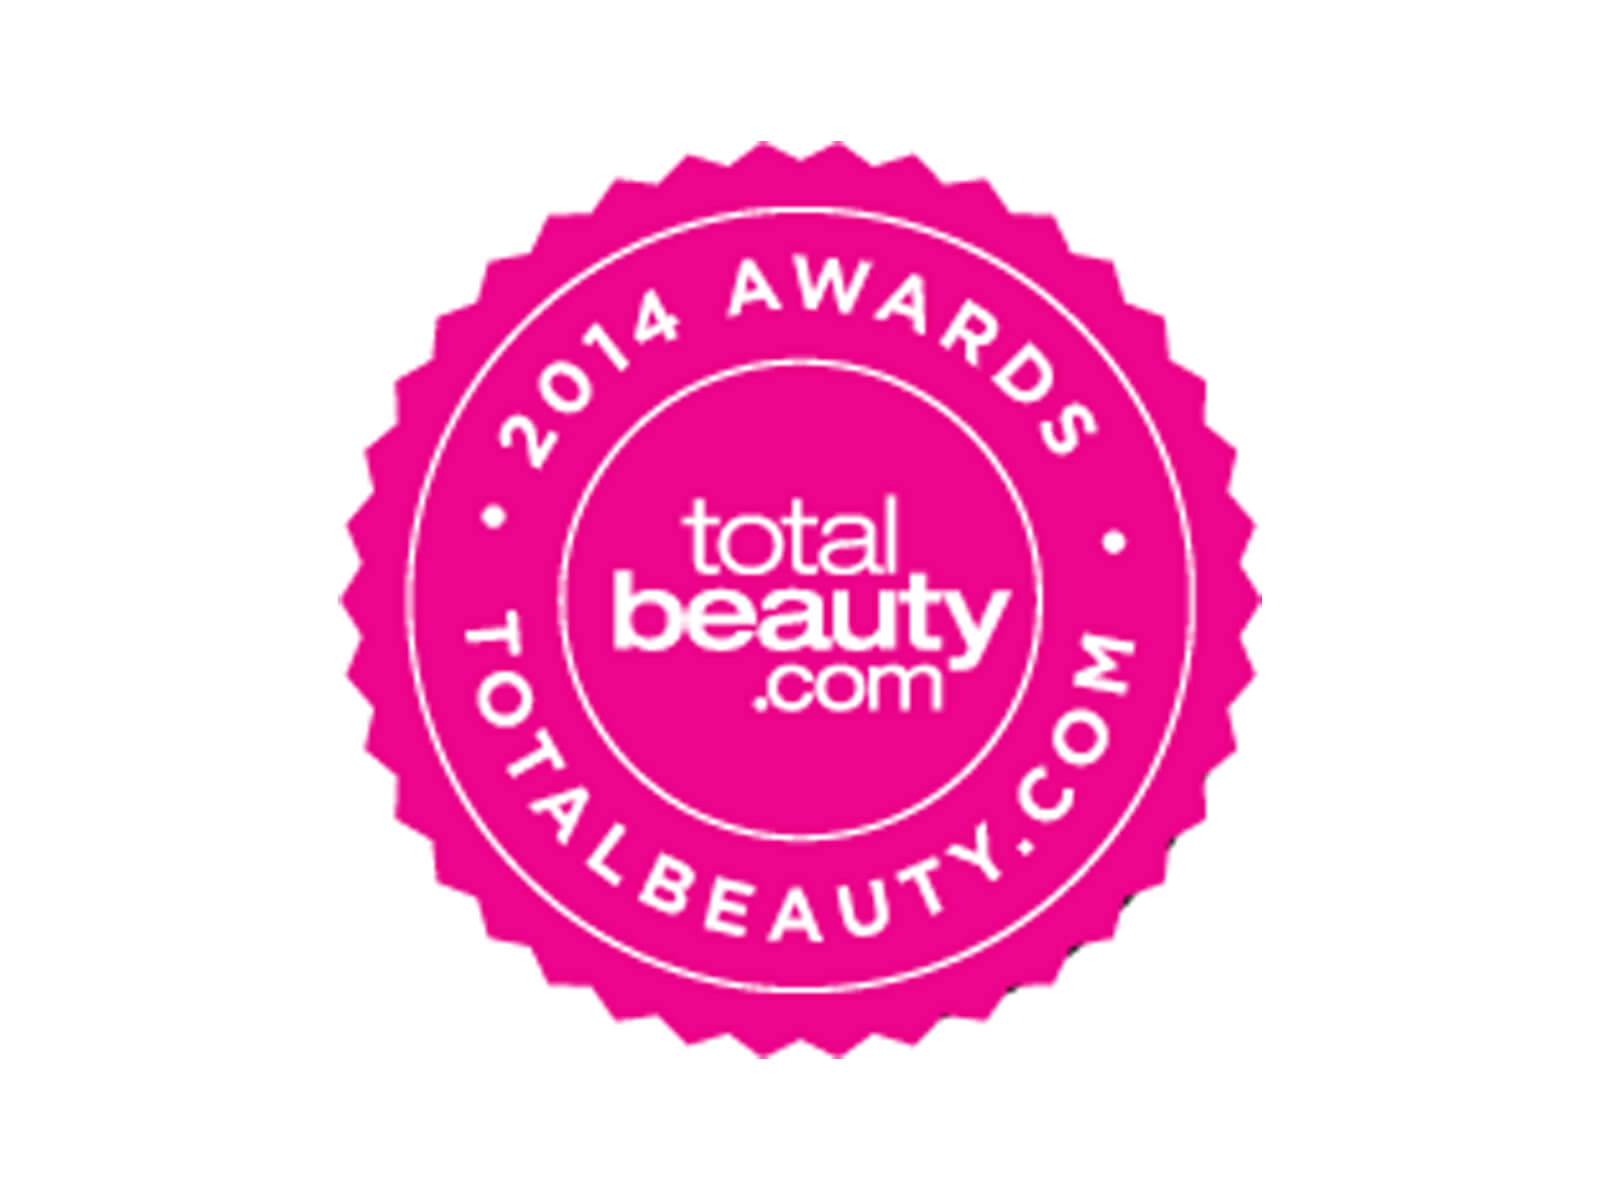 awards-landscape-totalbeauty-logo